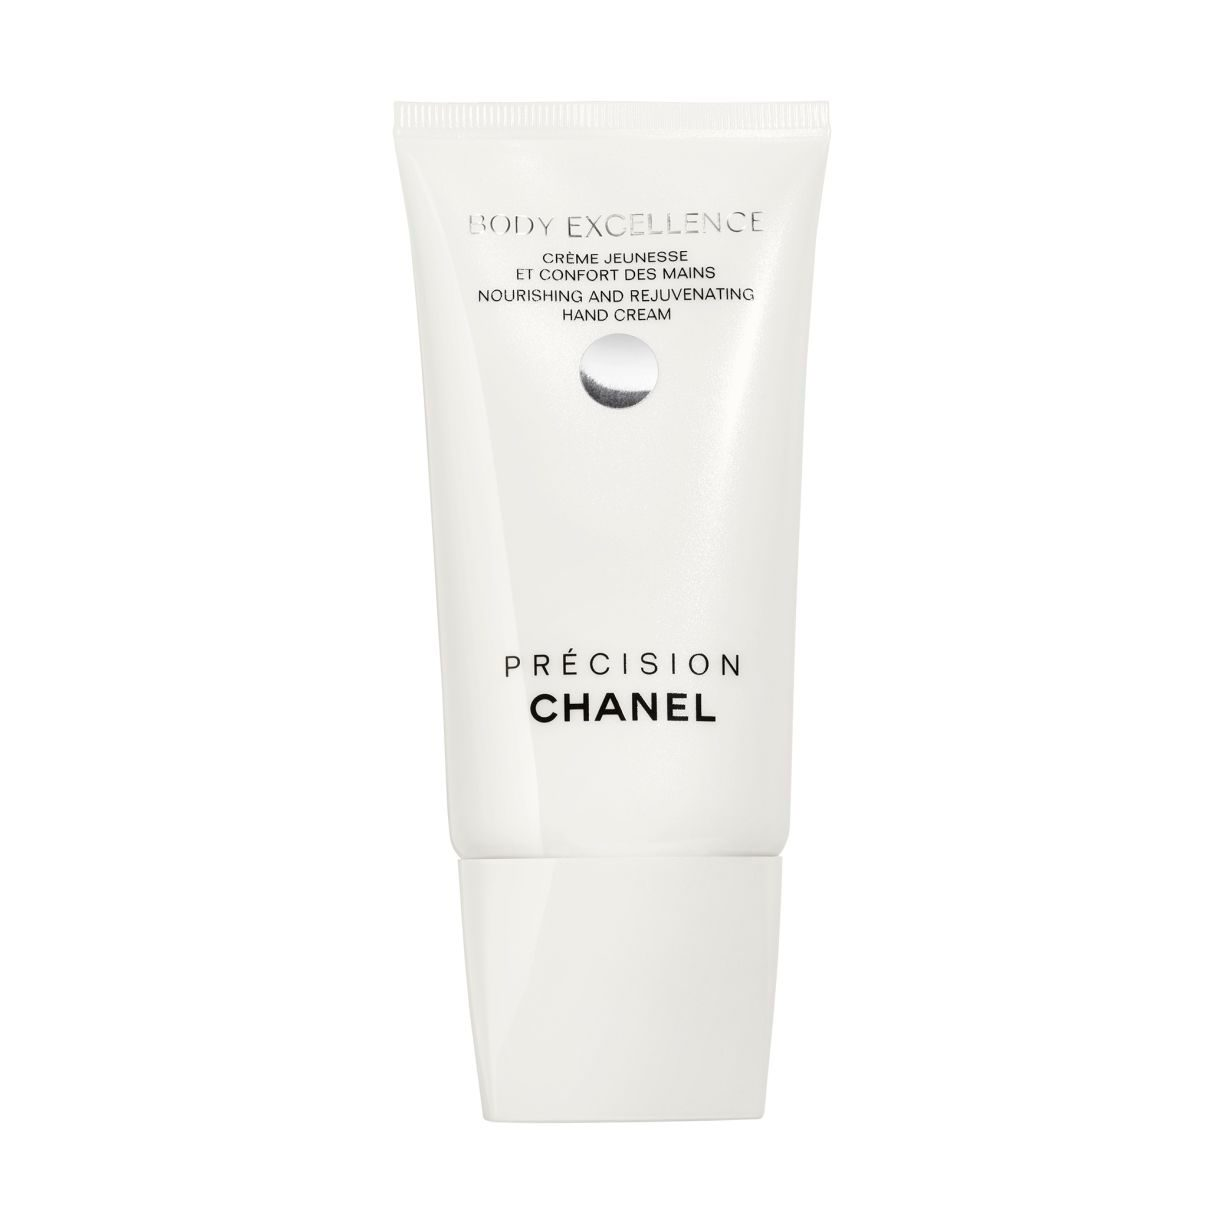 BODY EXCELLENCE NOURISHING AND REJUVENATING HAND CREAM